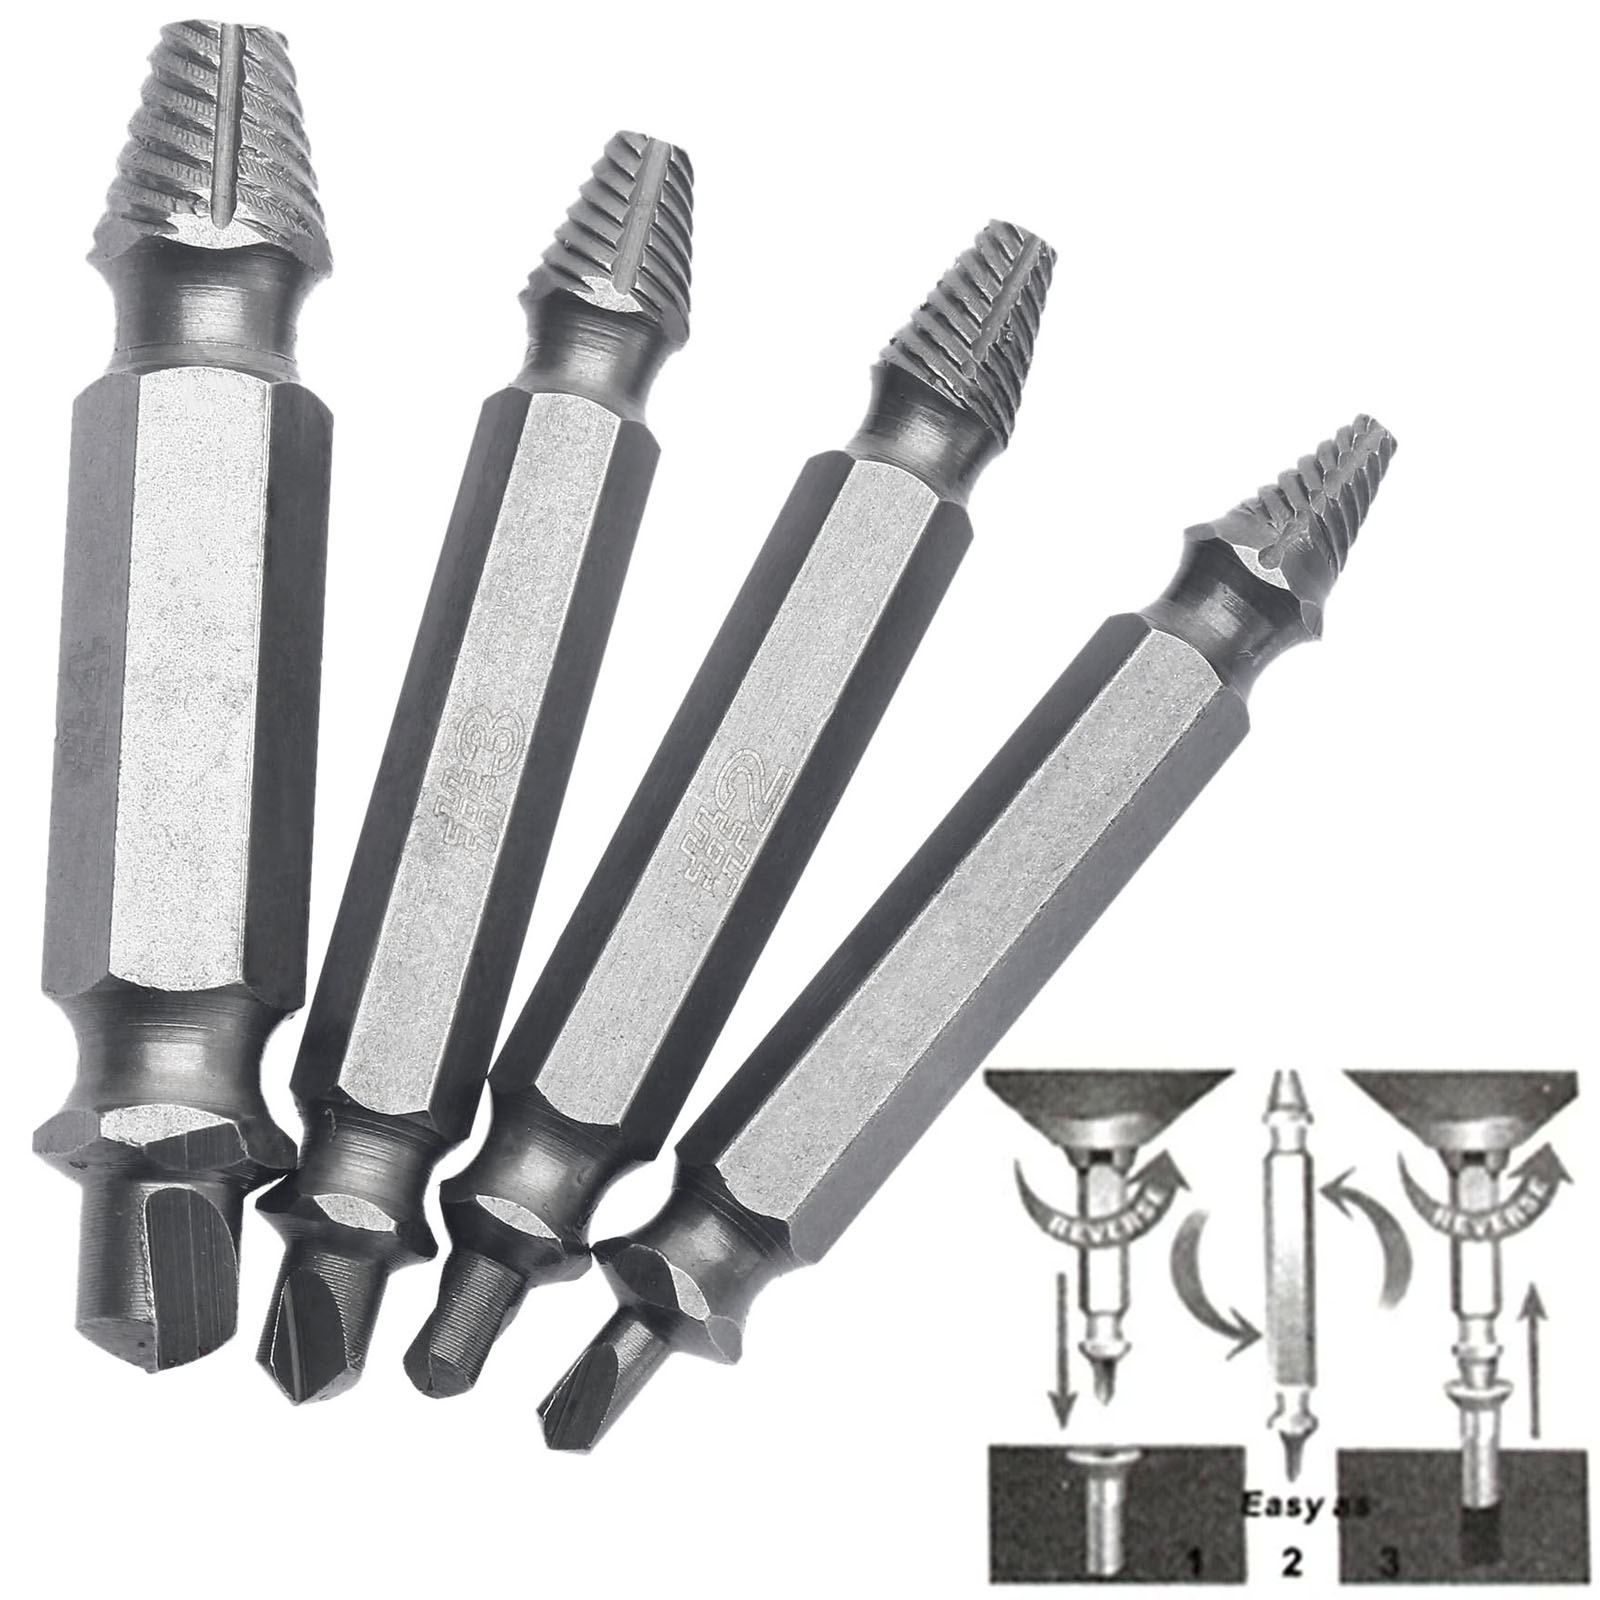 4Pcs Tools for Carpentry Screw Extractor Drill Bits Broken Damaged Bolt Remover Easy Out Double Side Bolt Stud Screw Extractors screw extractor